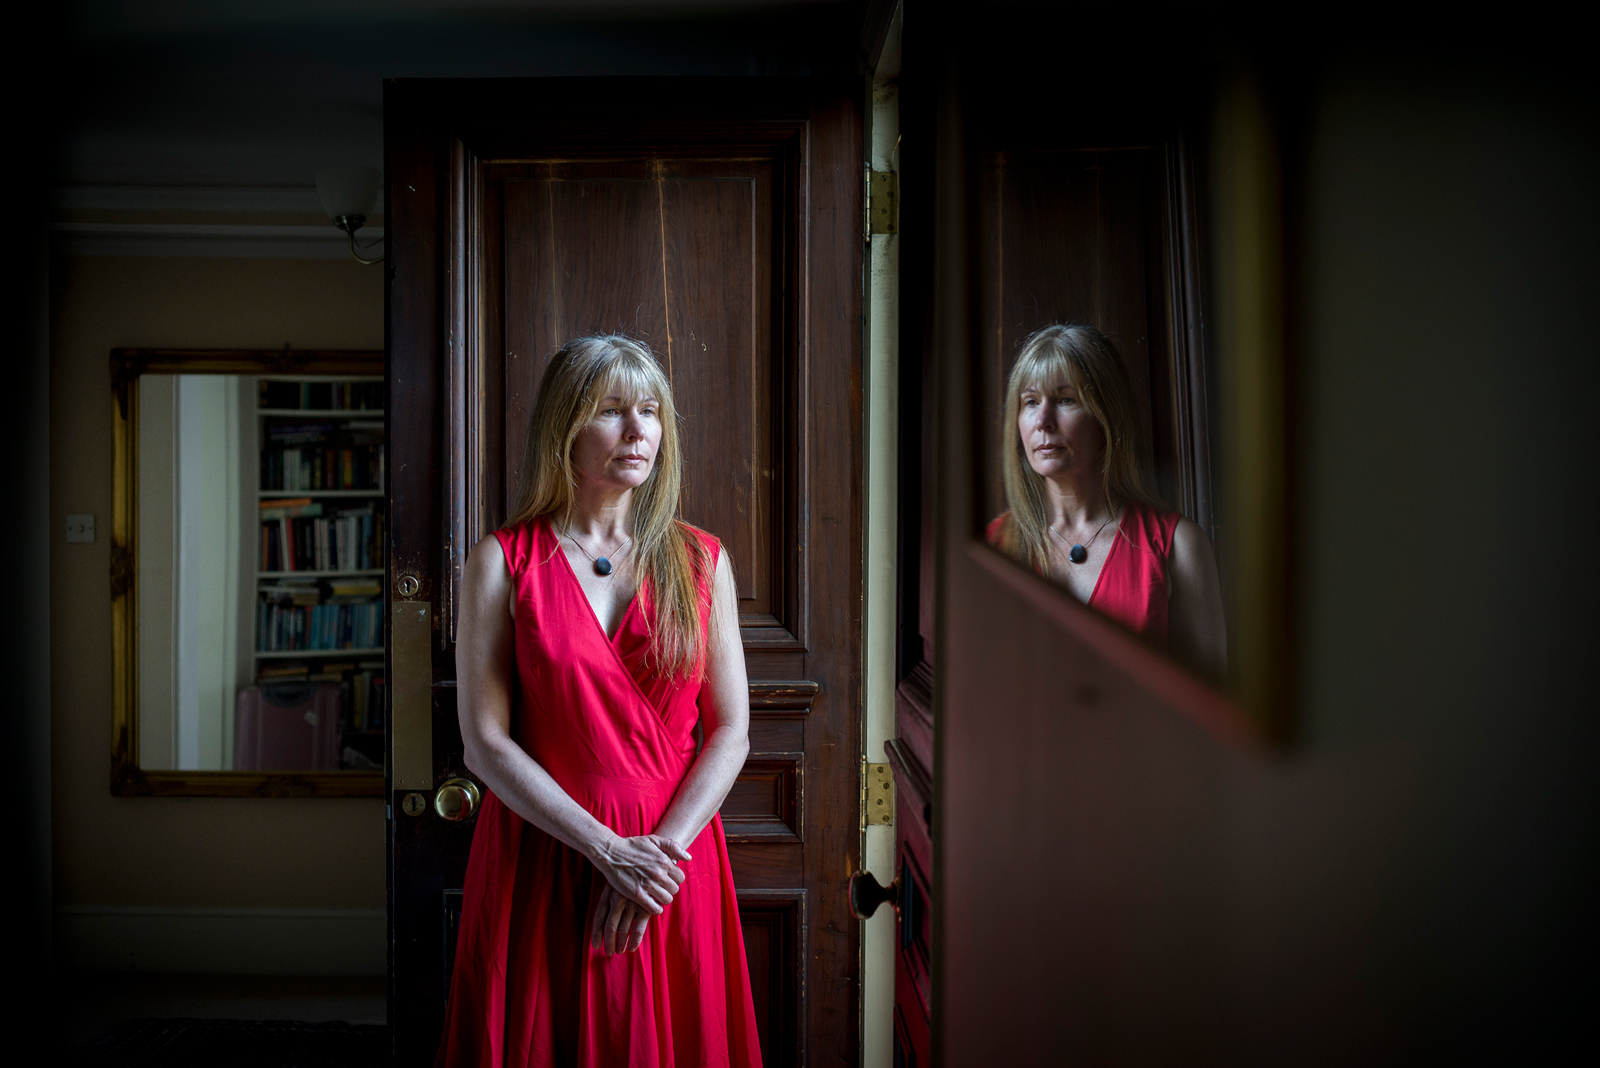 Clare Rewcastle Brown at her home in London on July 22, 2013